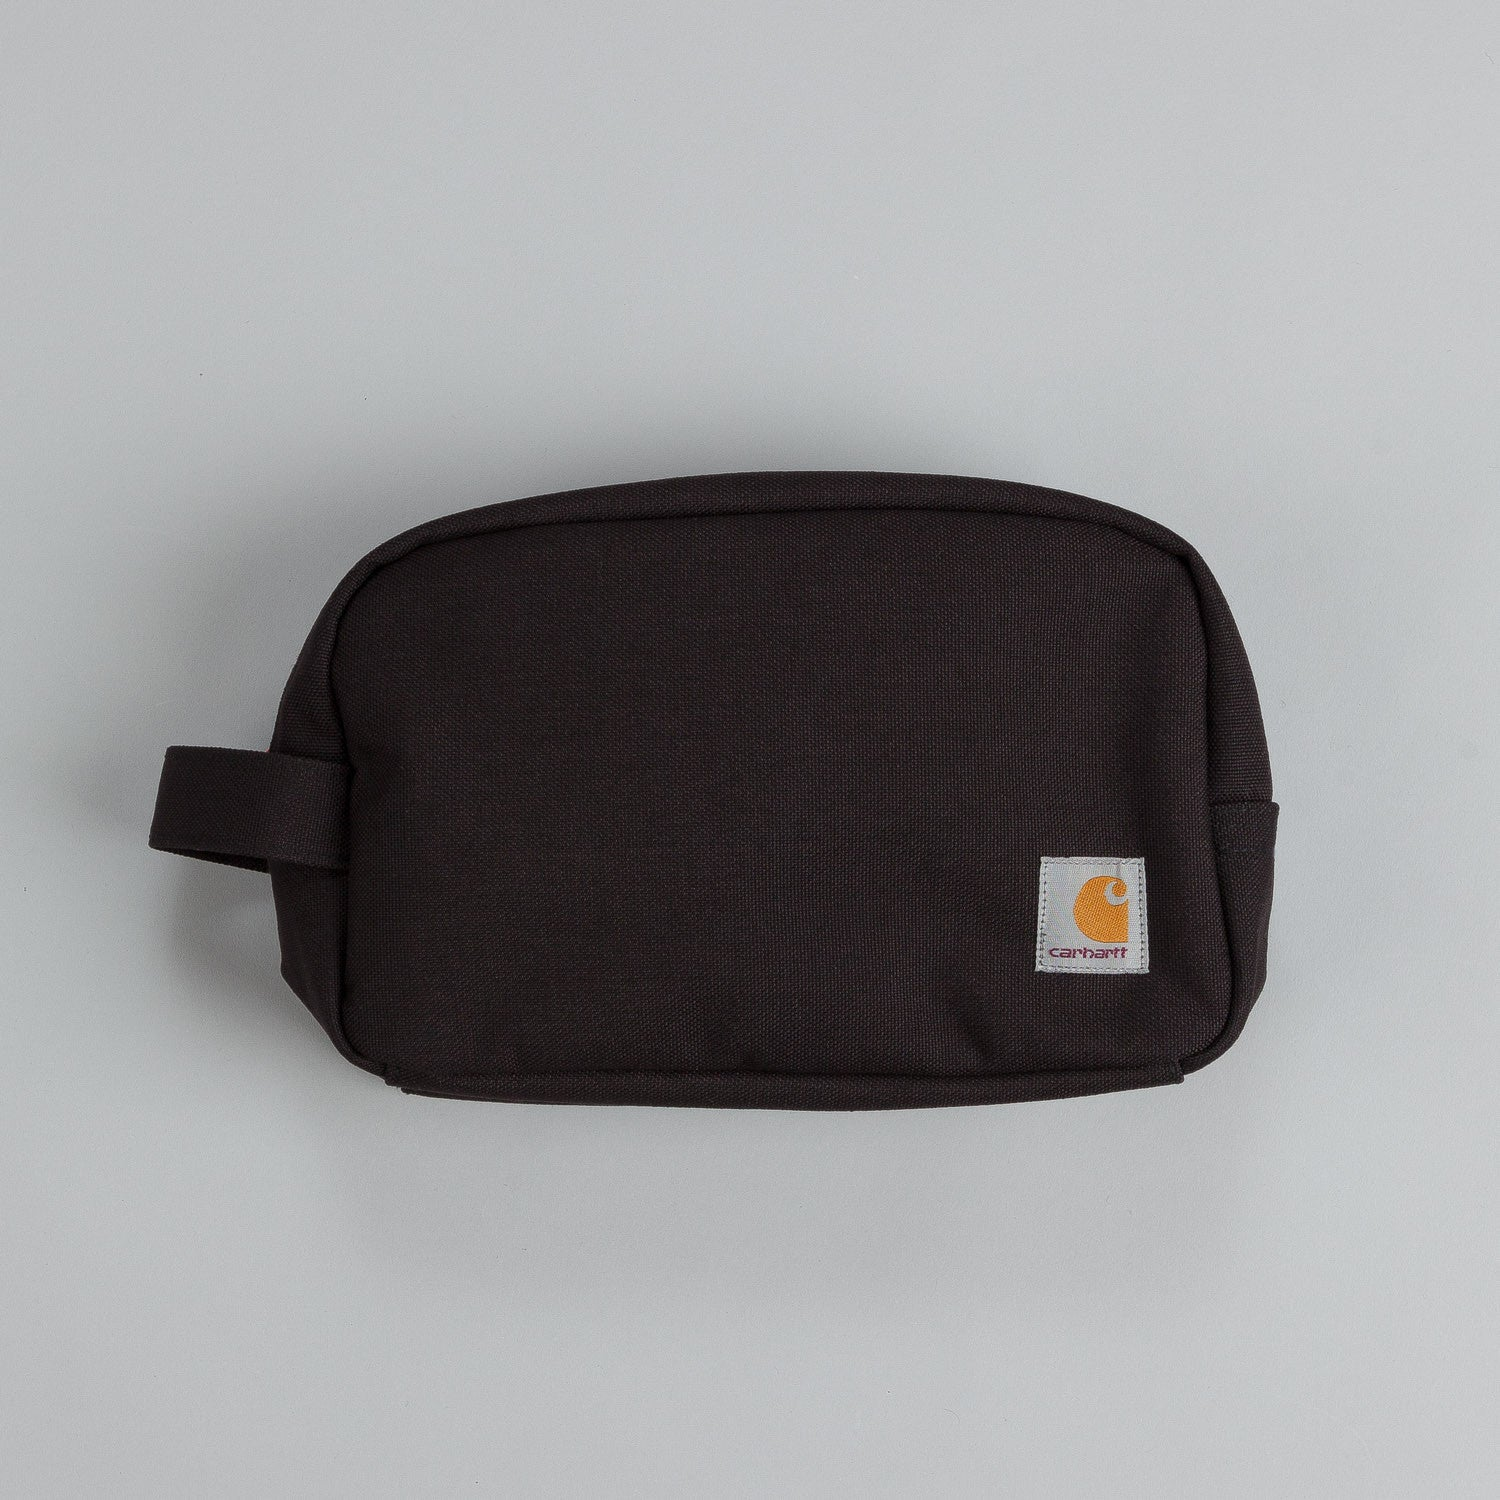 Carhartt Williams Travel Case Black